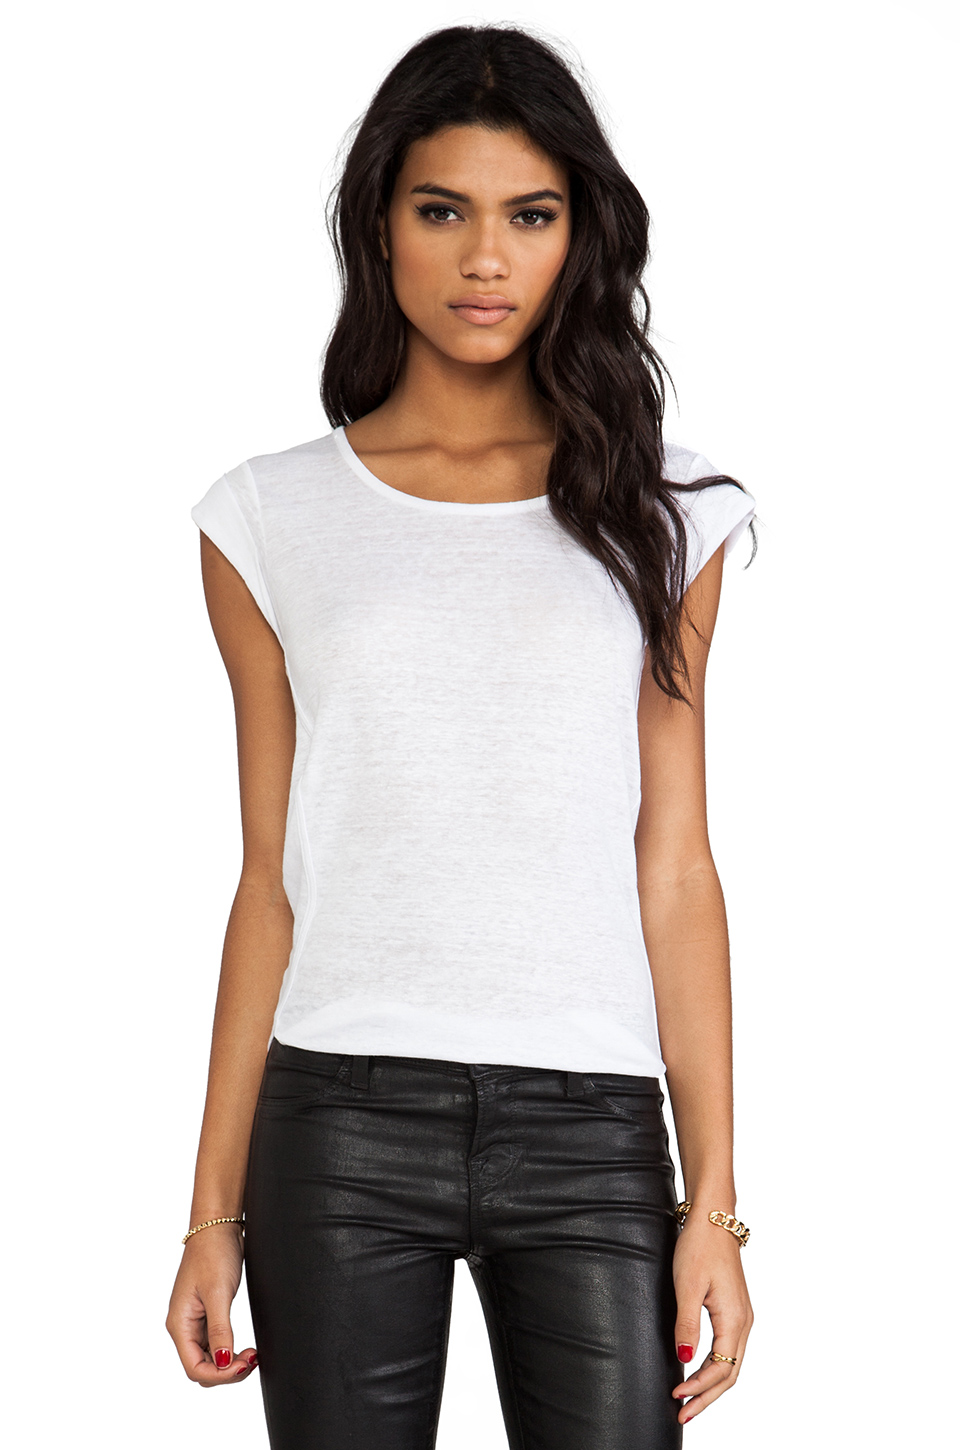 Marc by Marc Jacobs Carmen Tee in White